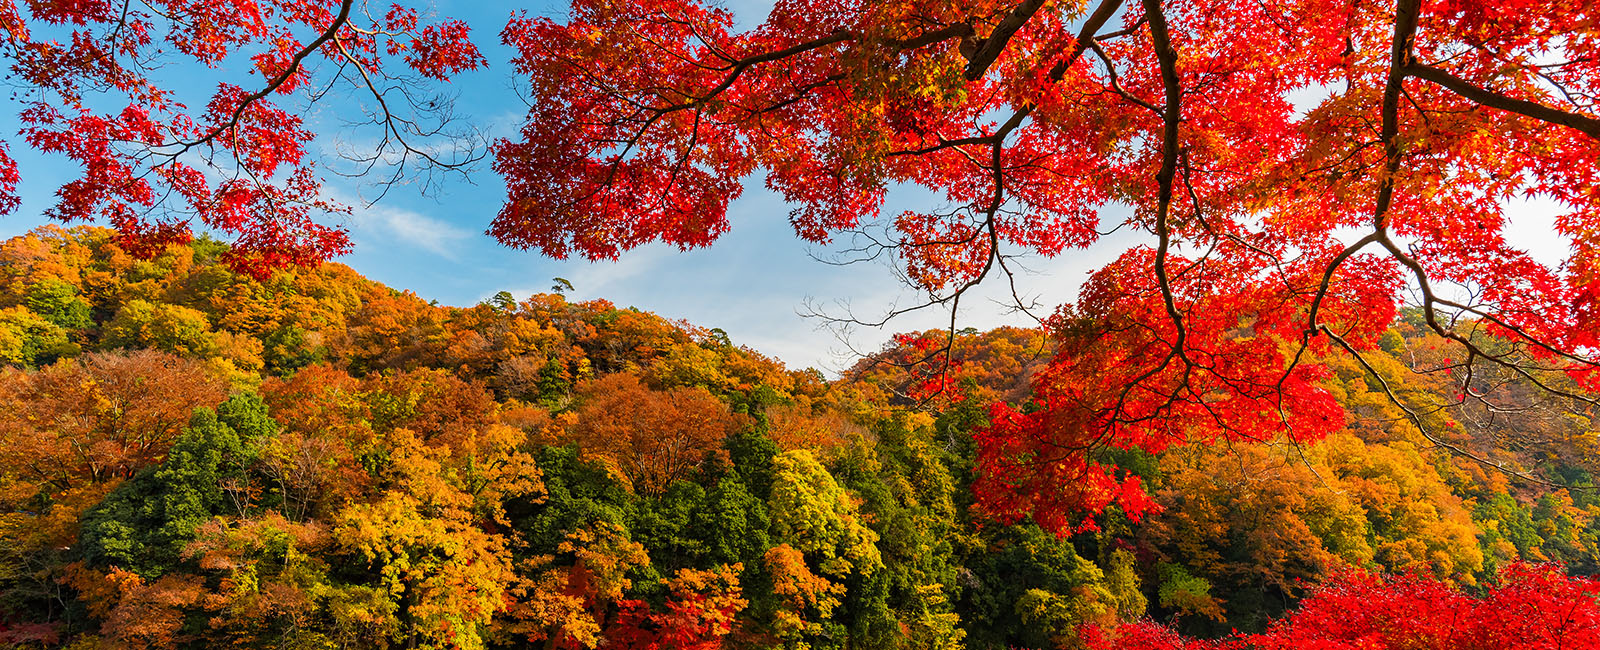 Peak Autumn: 8 Restaurants With Brilliant Fall Foliage Views